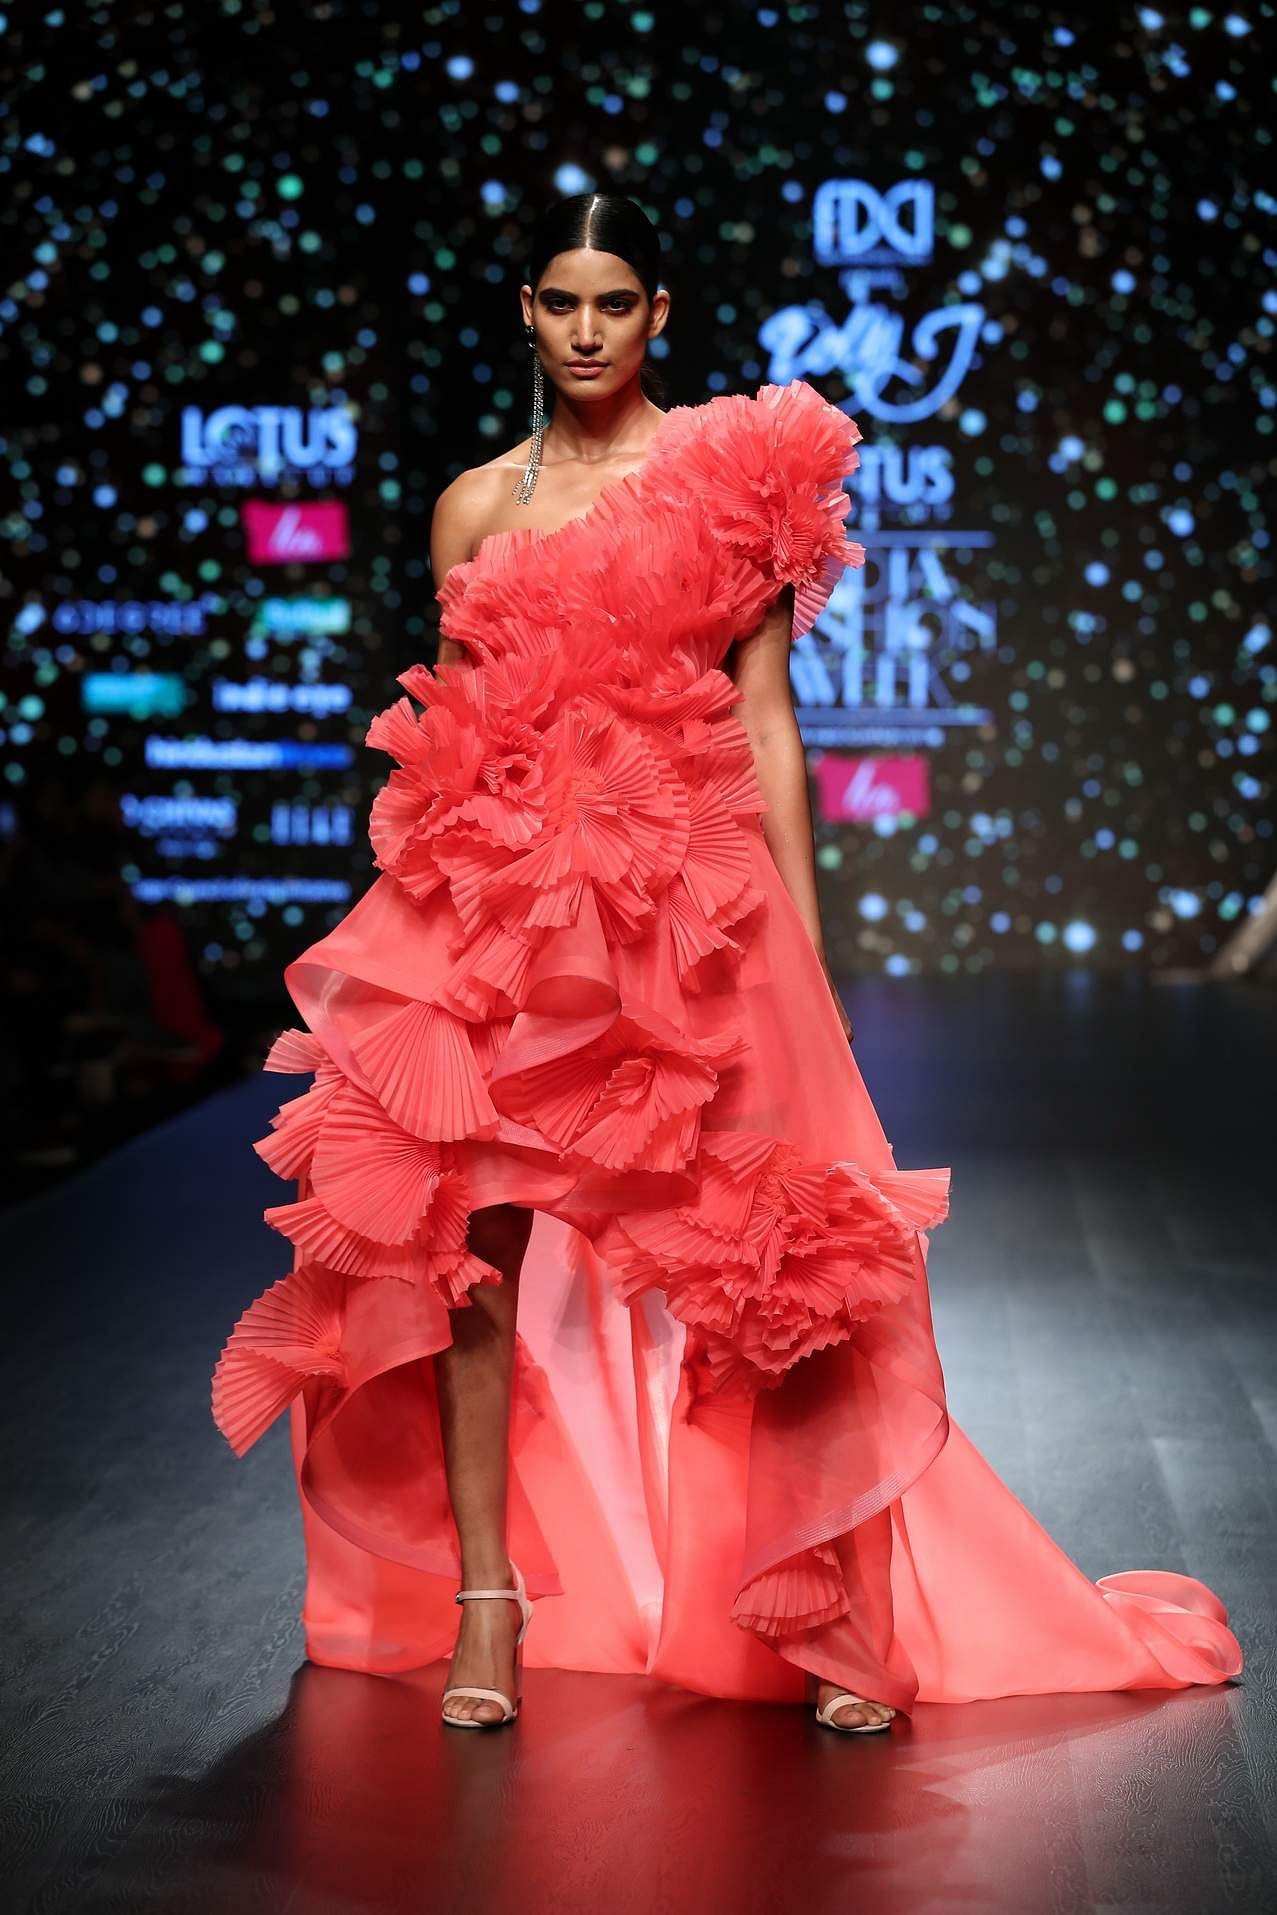 ca0ccbc979 Frill and froth. Pleated frills and ruffles were a prominent feature of  Dolly J's collection. Red carpet-ready gowns with asymmetrical hems were  paired with ...